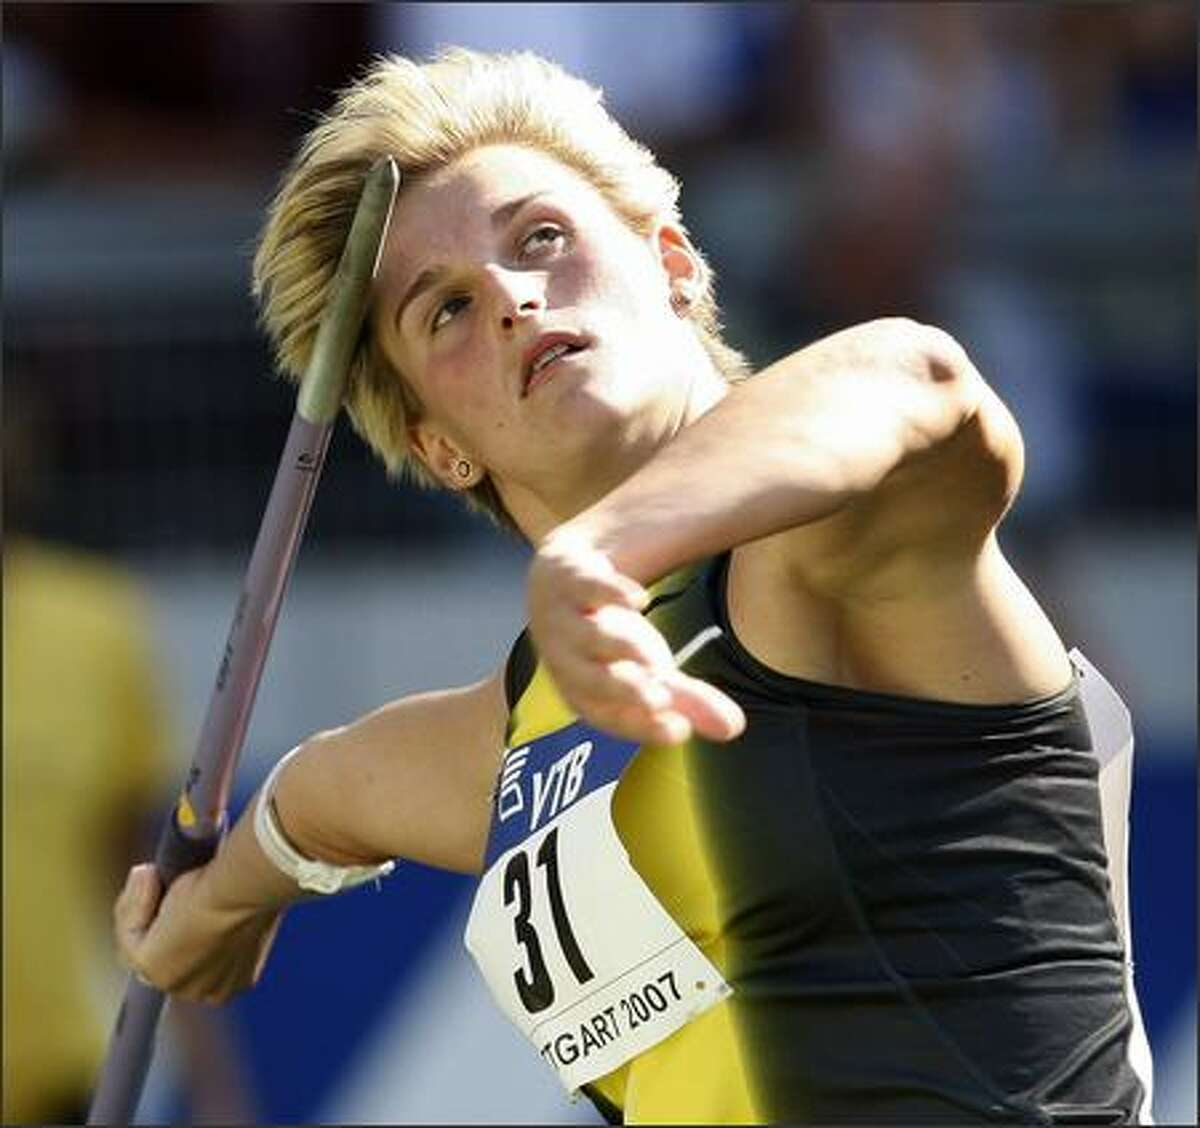 Barbora Spotakova from the Czech Republic makes an attempt during the Women's Javelin Throw at the IAAF World Athletics Final at the Gottlieb Daimler stadium in Stuttgart, Germany, on Saturday, Sept. 22, 2007. She finished first. (AP Photo/Thomas Kienzle)